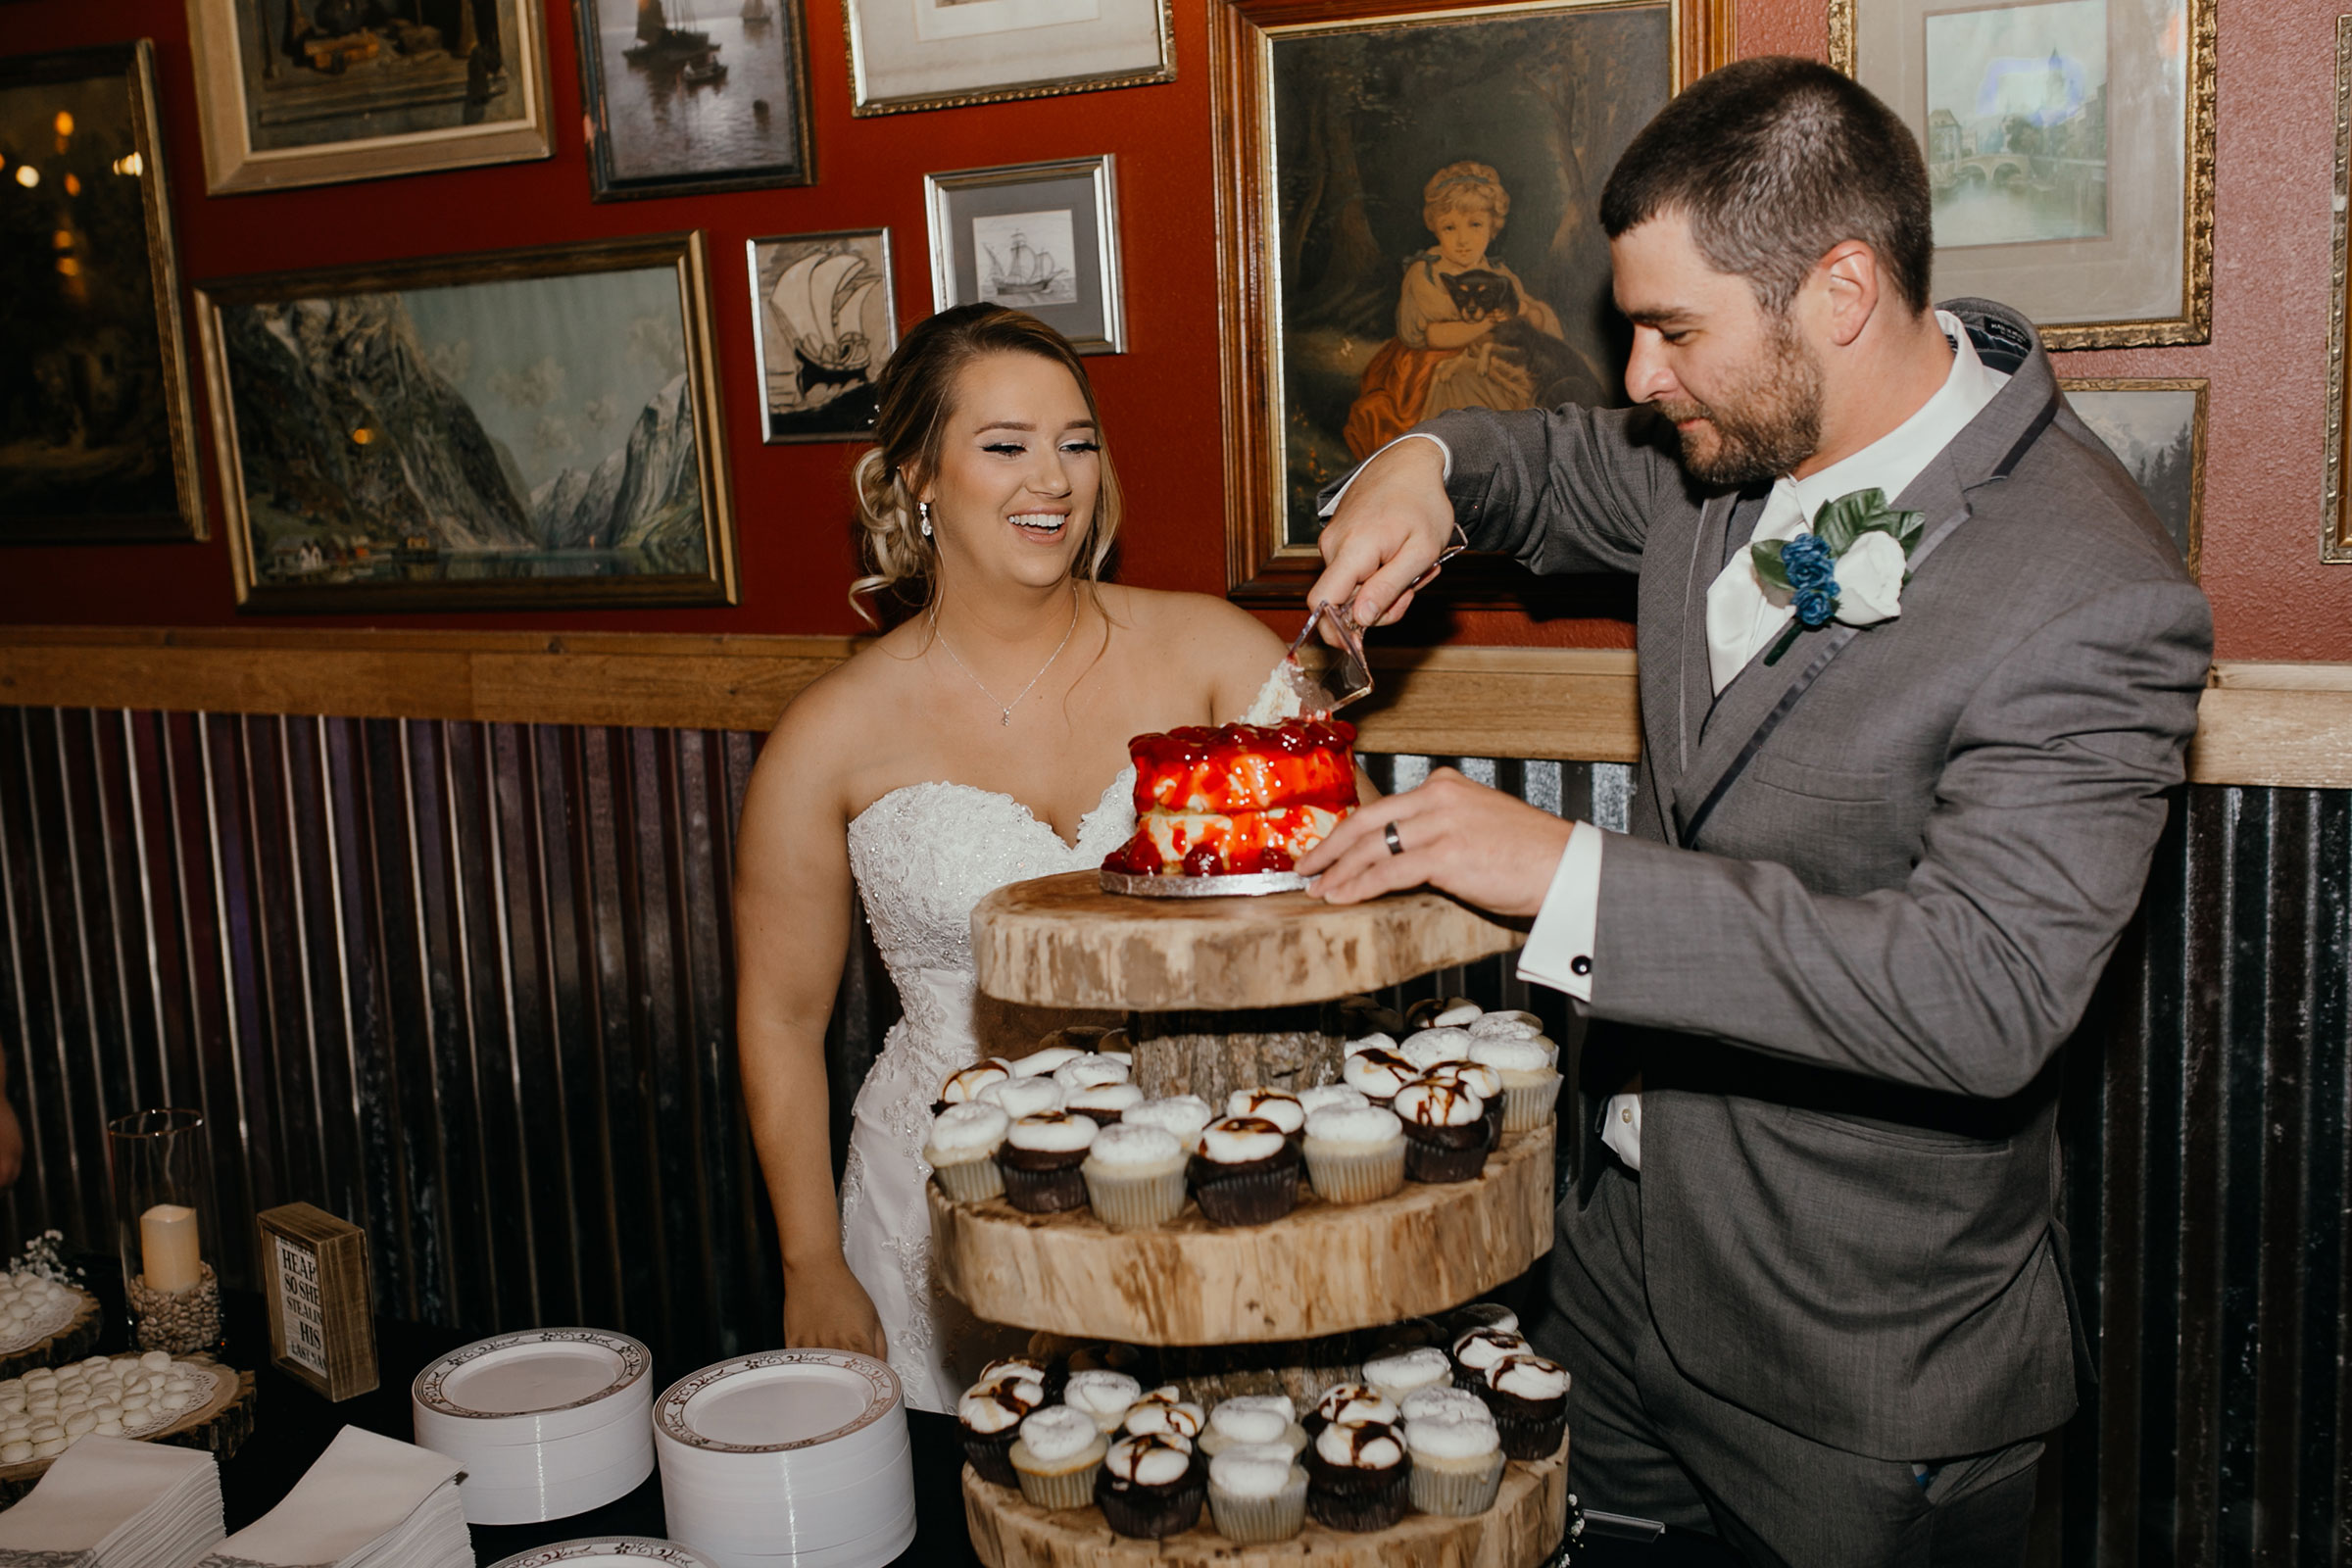 groom-cutting-cake-decades-event-center-building-desmoines-iowa-raelyn-ramey-photography..jpg